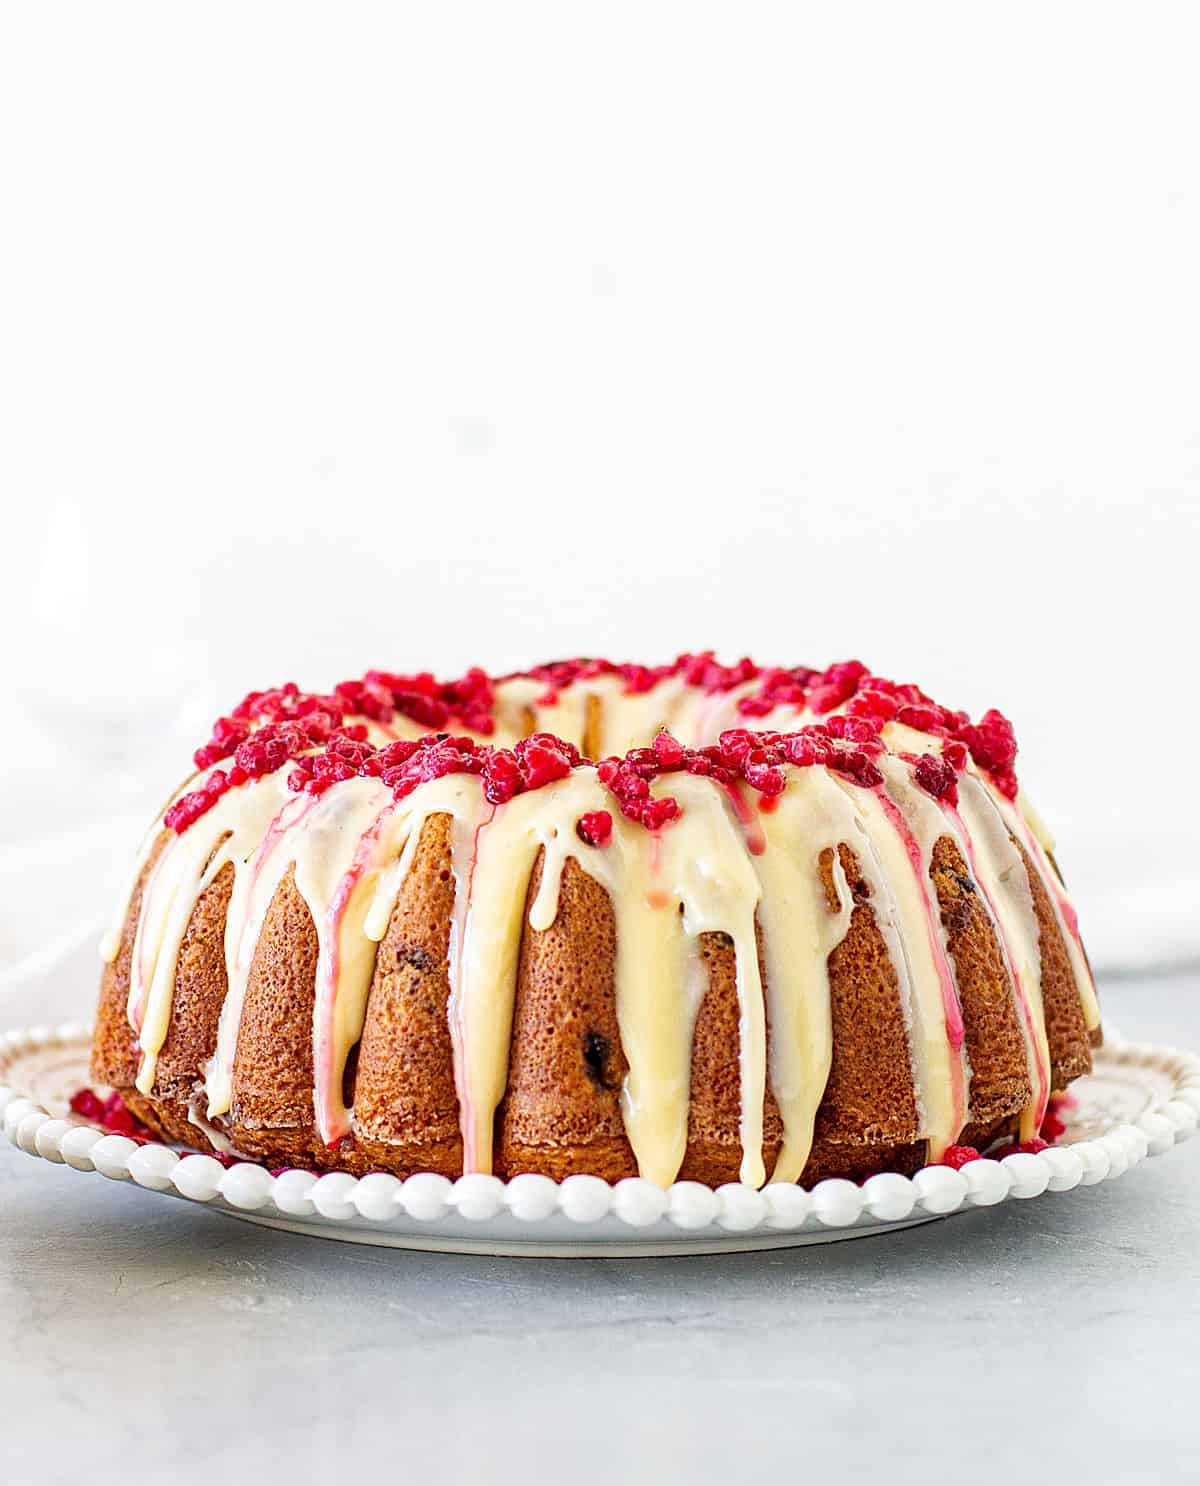 Whole bundt cake with white chocolate and raspberries on white plate, grey white background